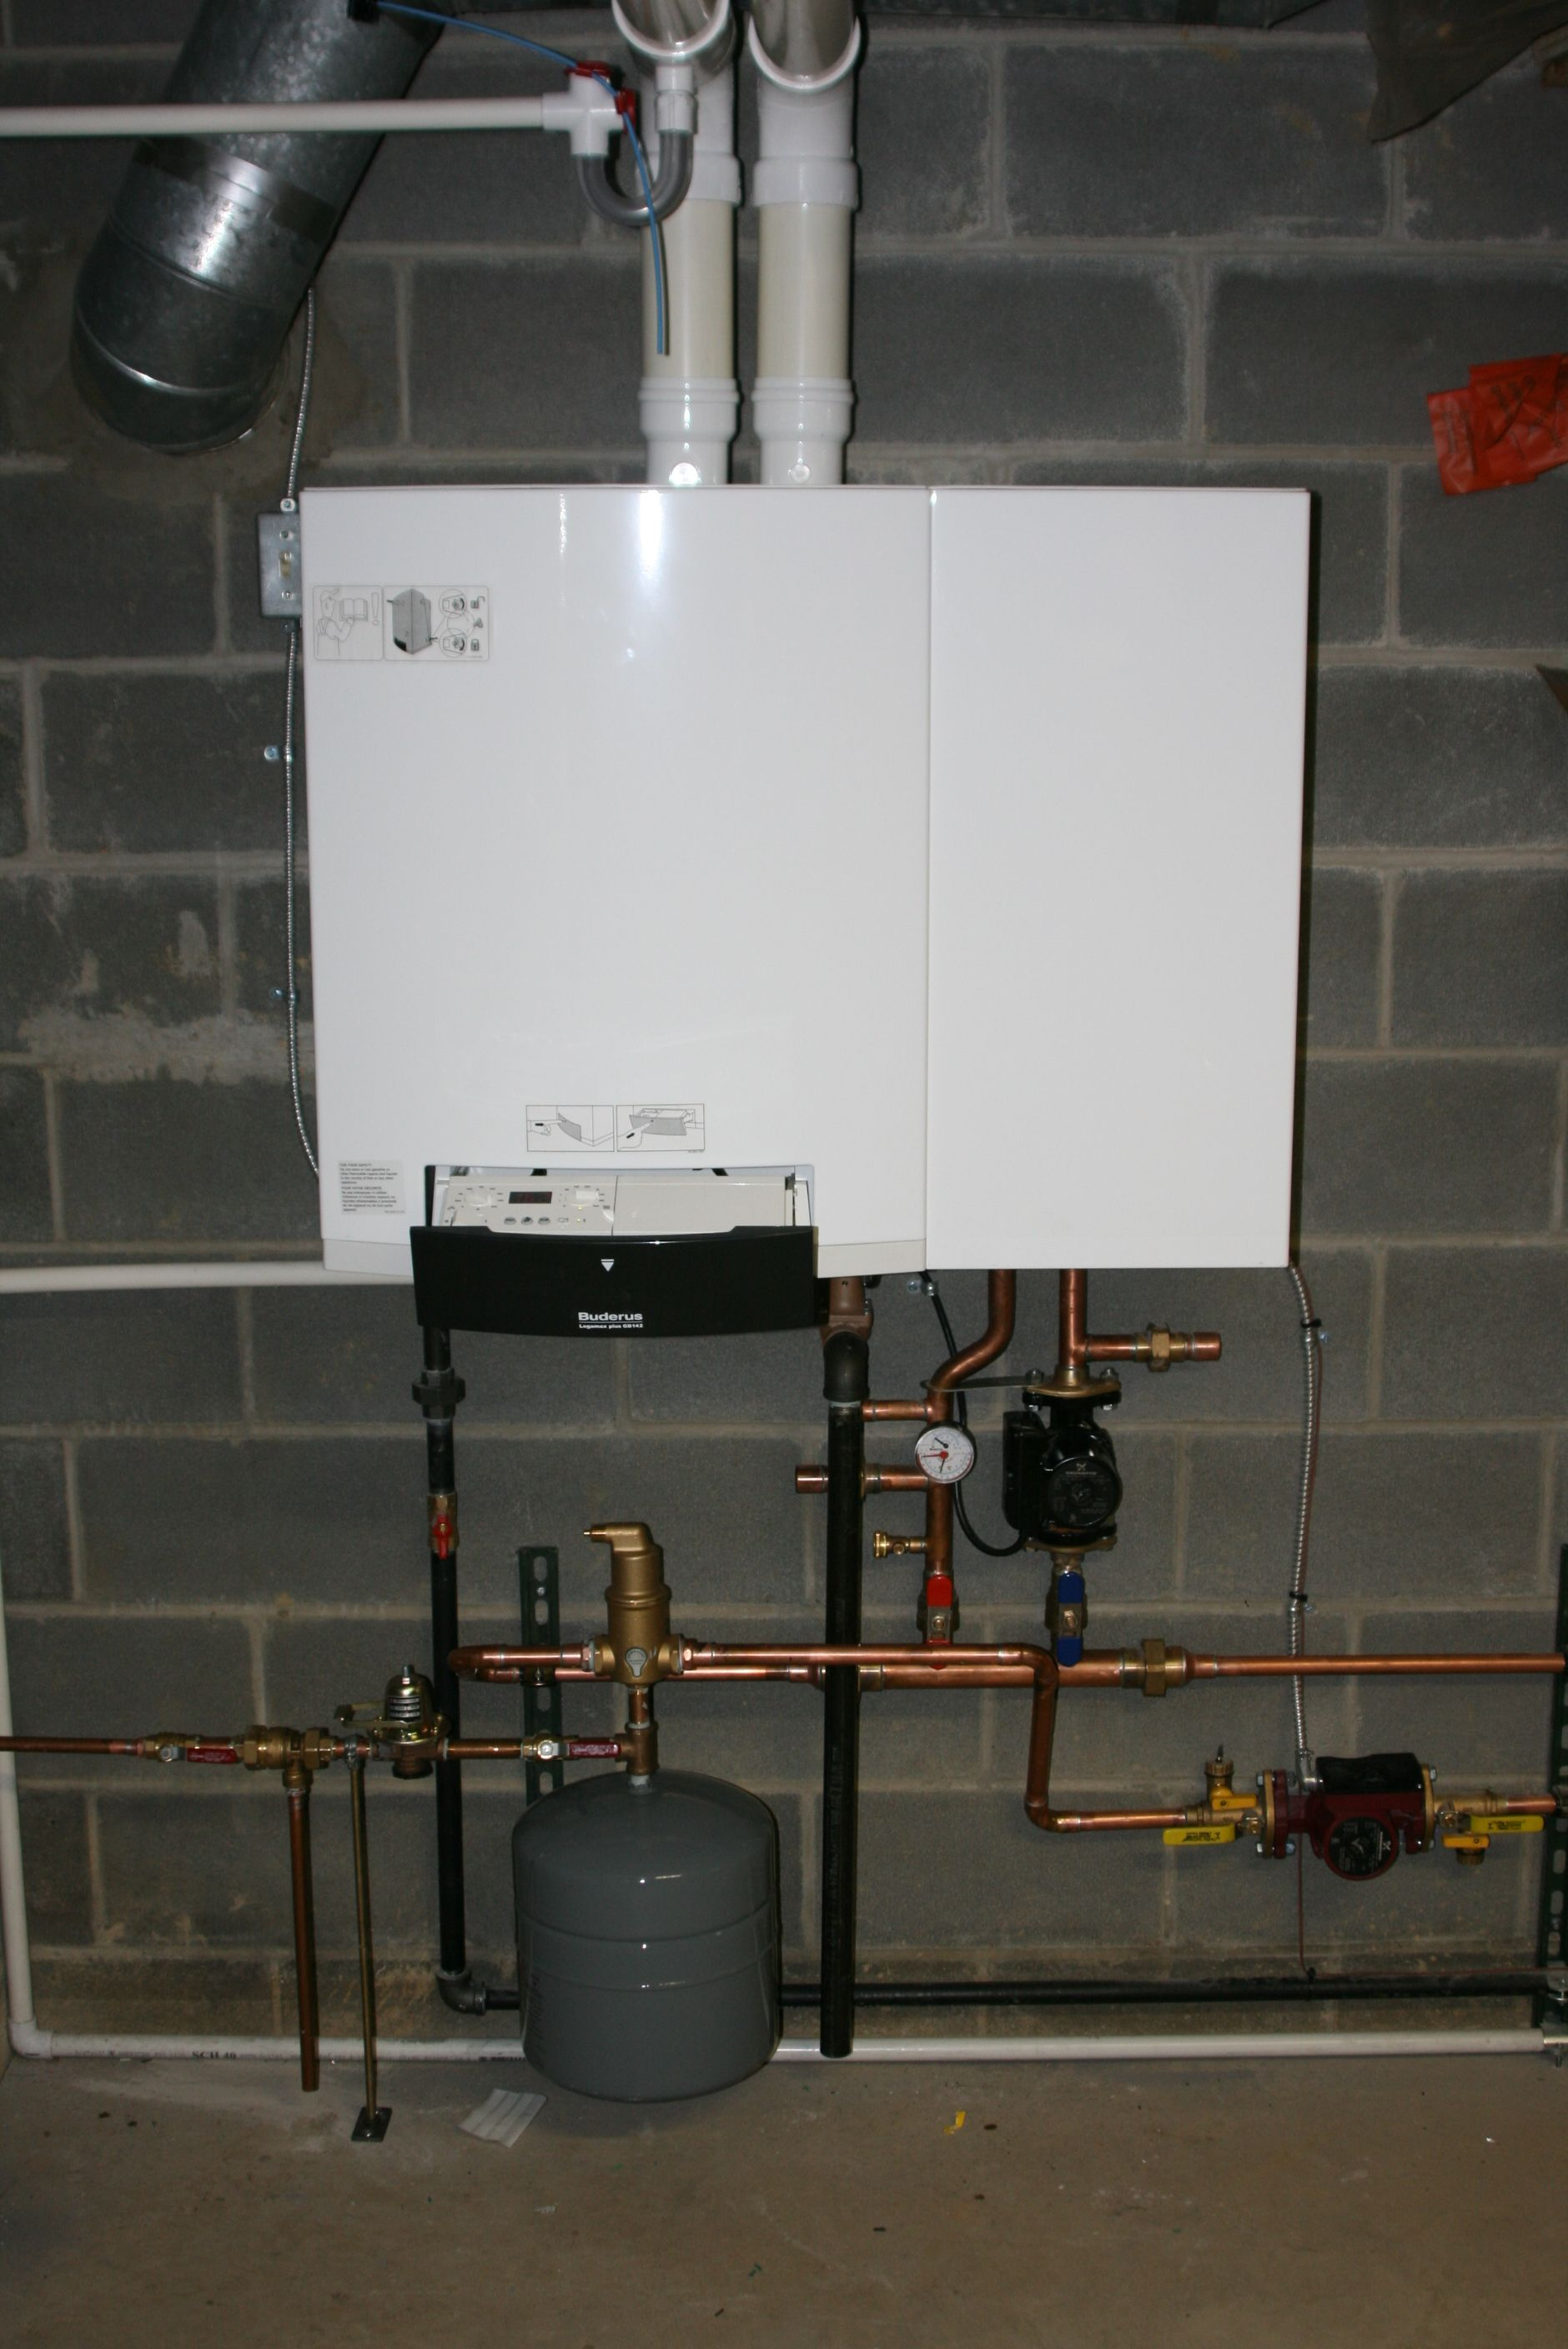 This is a Buderus GB142 boiler. It is between 92 and 96 percent ...